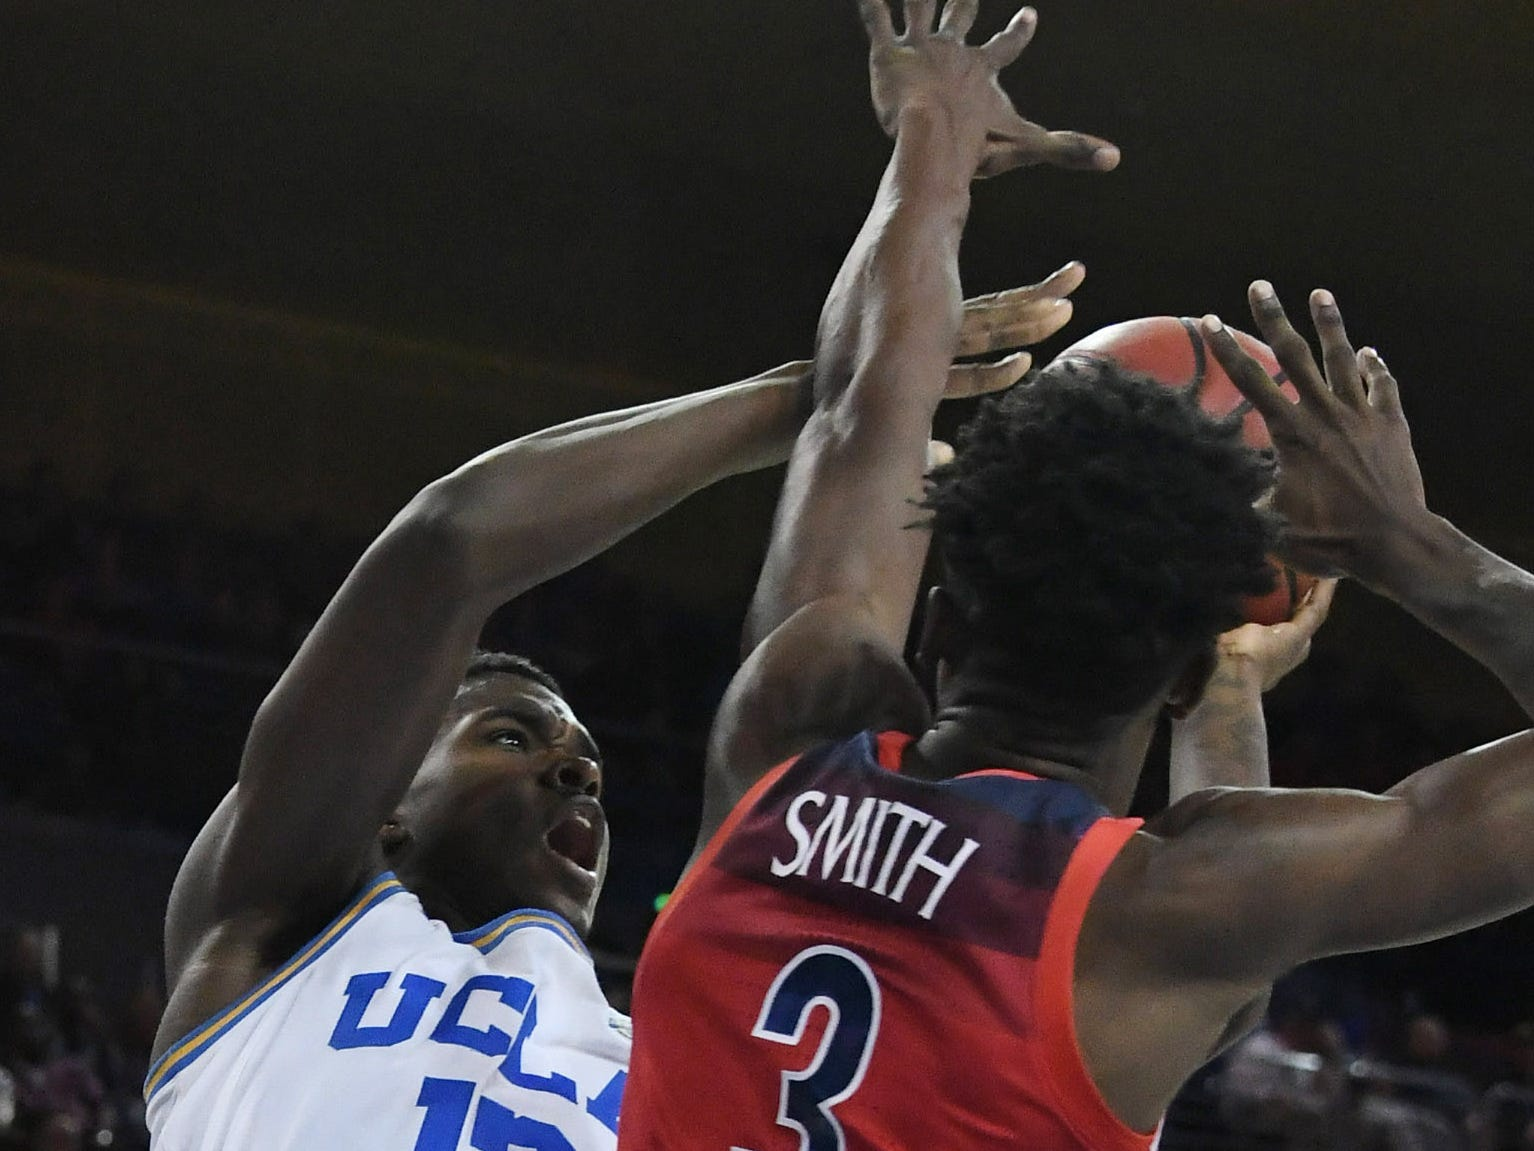 Jan 26, 2019; Los Angeles, CA, USA; UCLA Bruins guard Kris Wilkes (13) shoots against Arizona Wildcats guard Dylan Smith (3) in the second half at Pauley Pavilion.